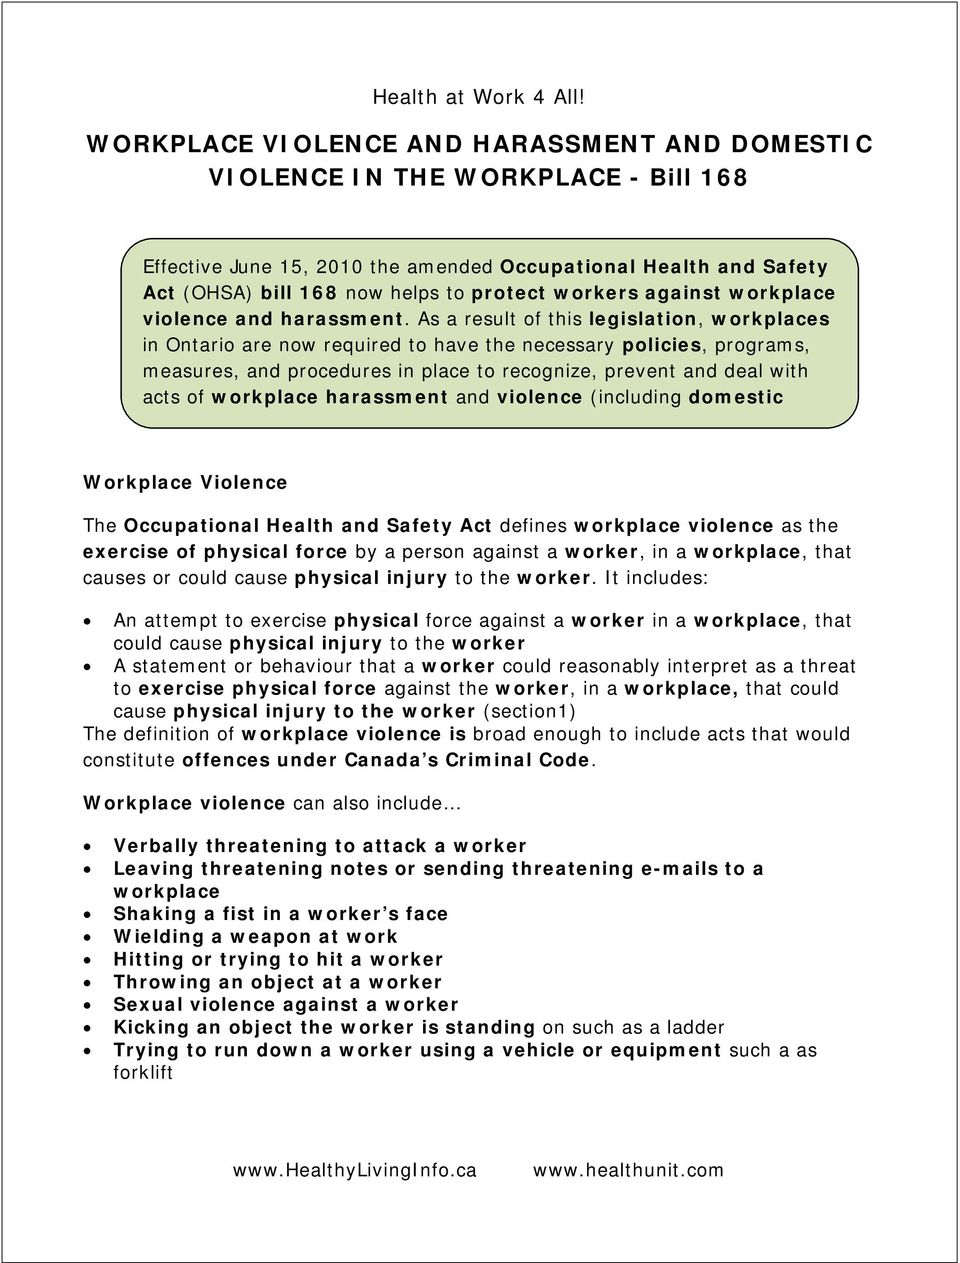 against workplace violence and harassment.